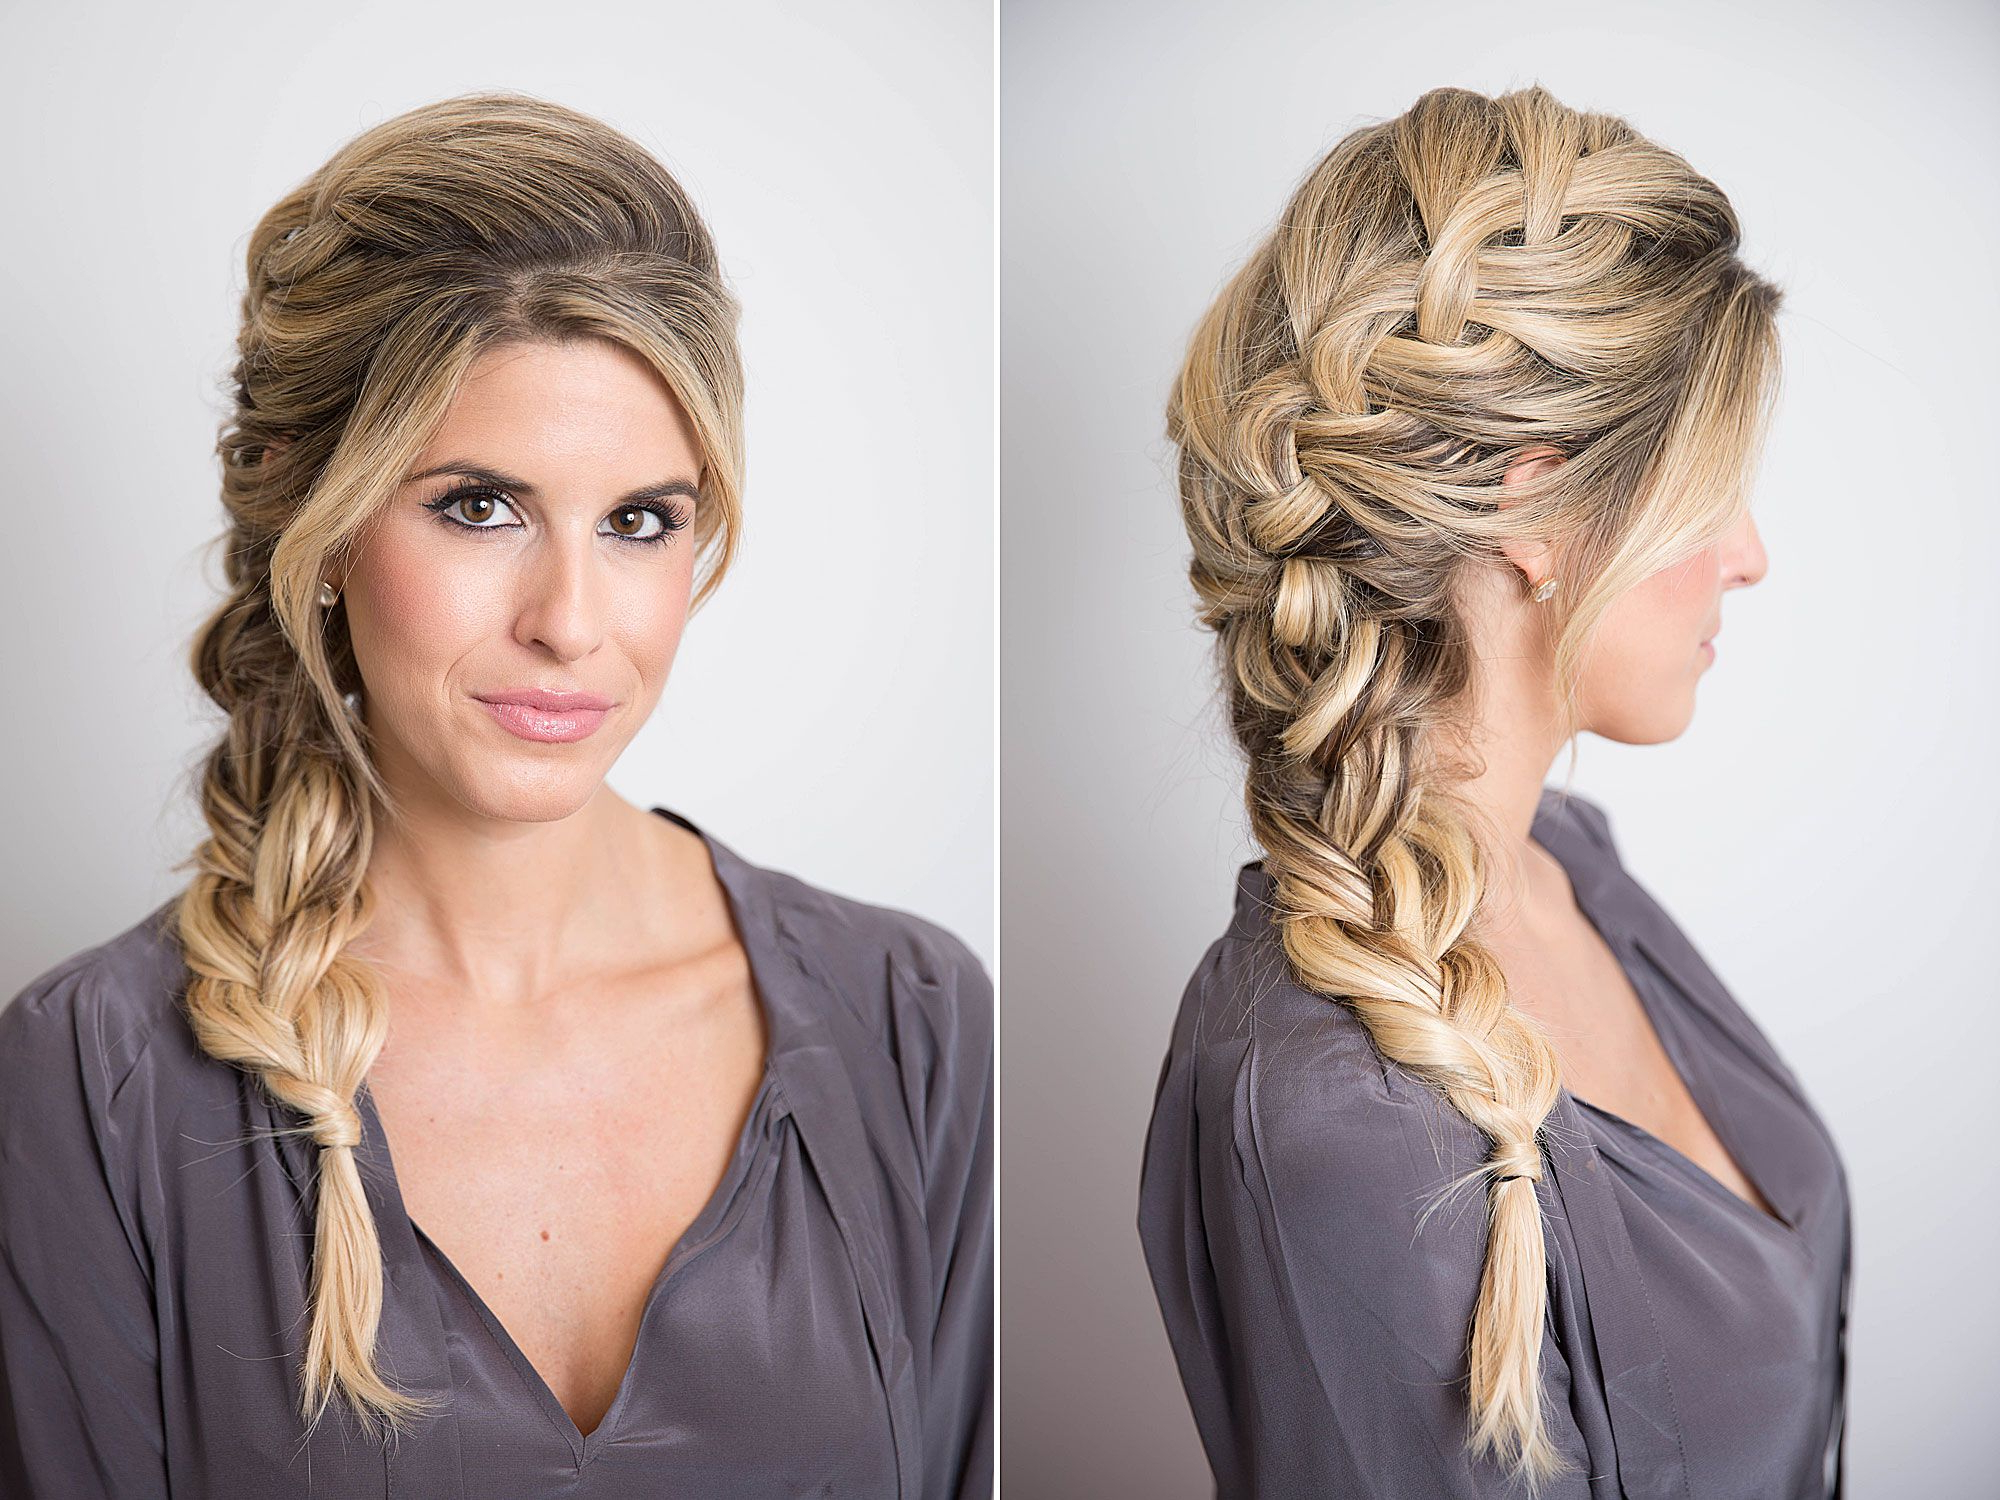 17 Braided Hairstyles With Gifs – How To Do Every Type Of Braid Throughout Preferred Double Twist And Curls To One Side Prom Hairstyles (View 2 of 20)